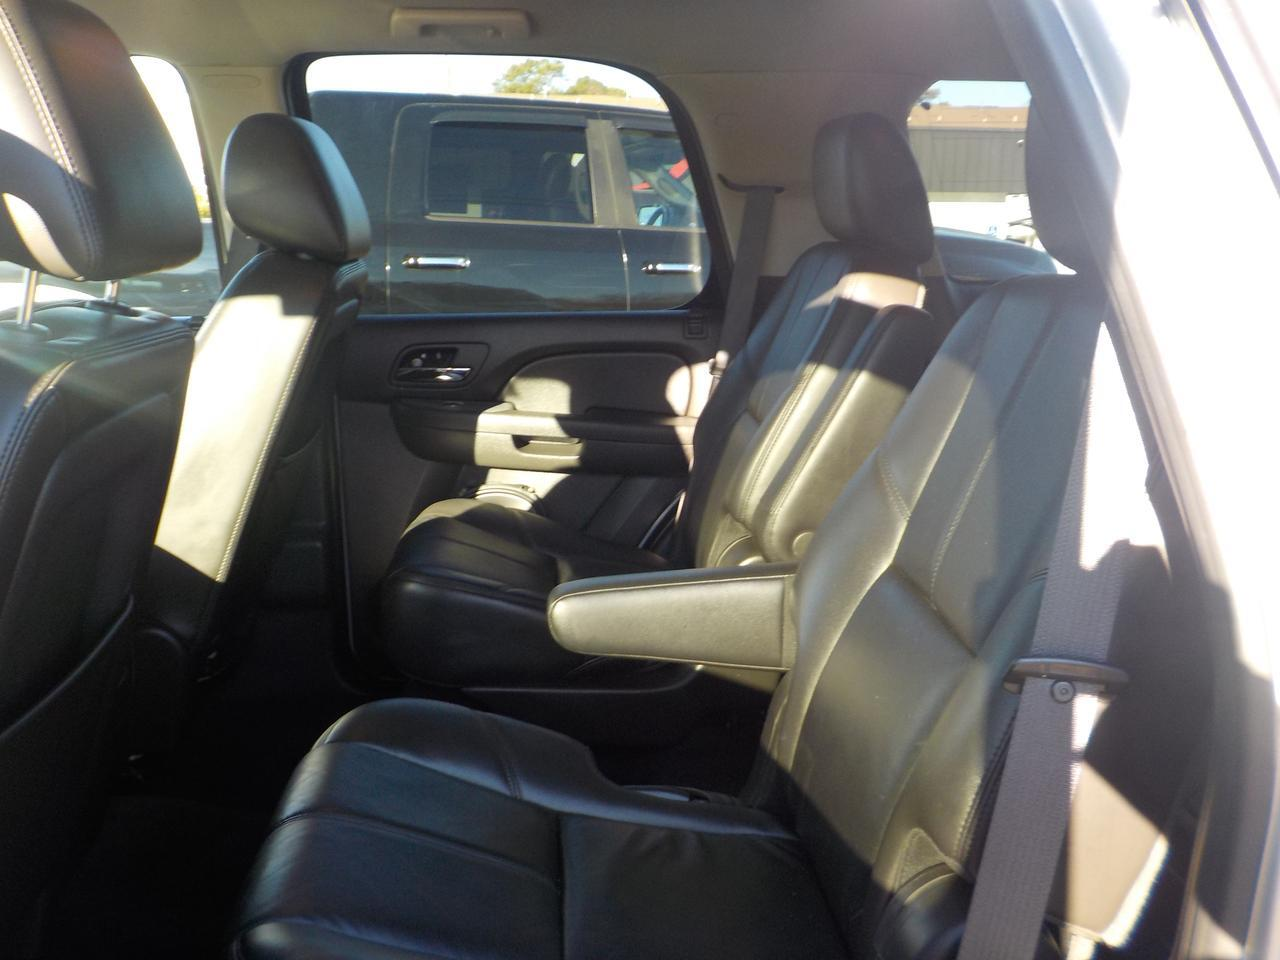 2011 CHEVROLET TAHOE LT 4X4, LEATHER SEATS, REMOTE START, 3RD ROW SEATING, VERY CLEAN, WELL MAINTAINED! Virginia Beach VA